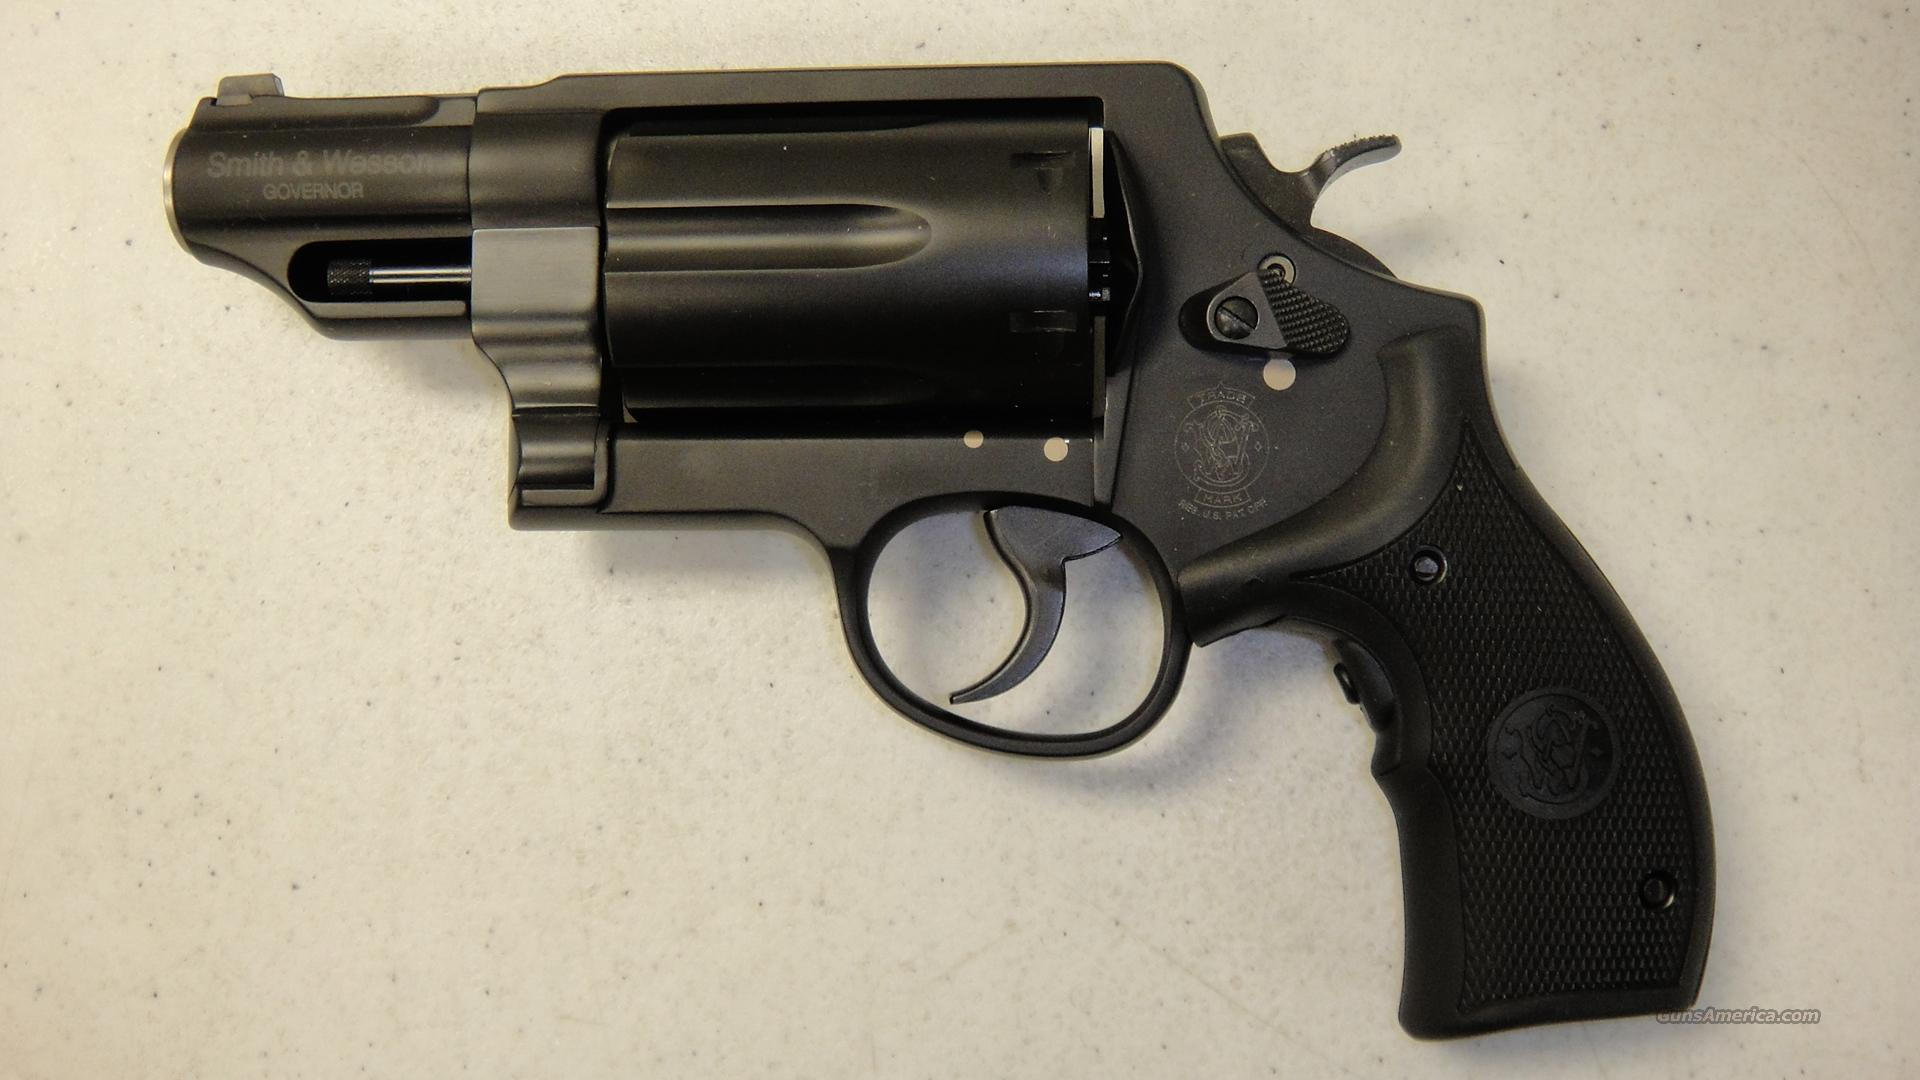 Smith & Wesson Governor With Crimson Trace Laser  Guns > Pistols > Smith & Wesson Revolvers > Full Frame Revolver